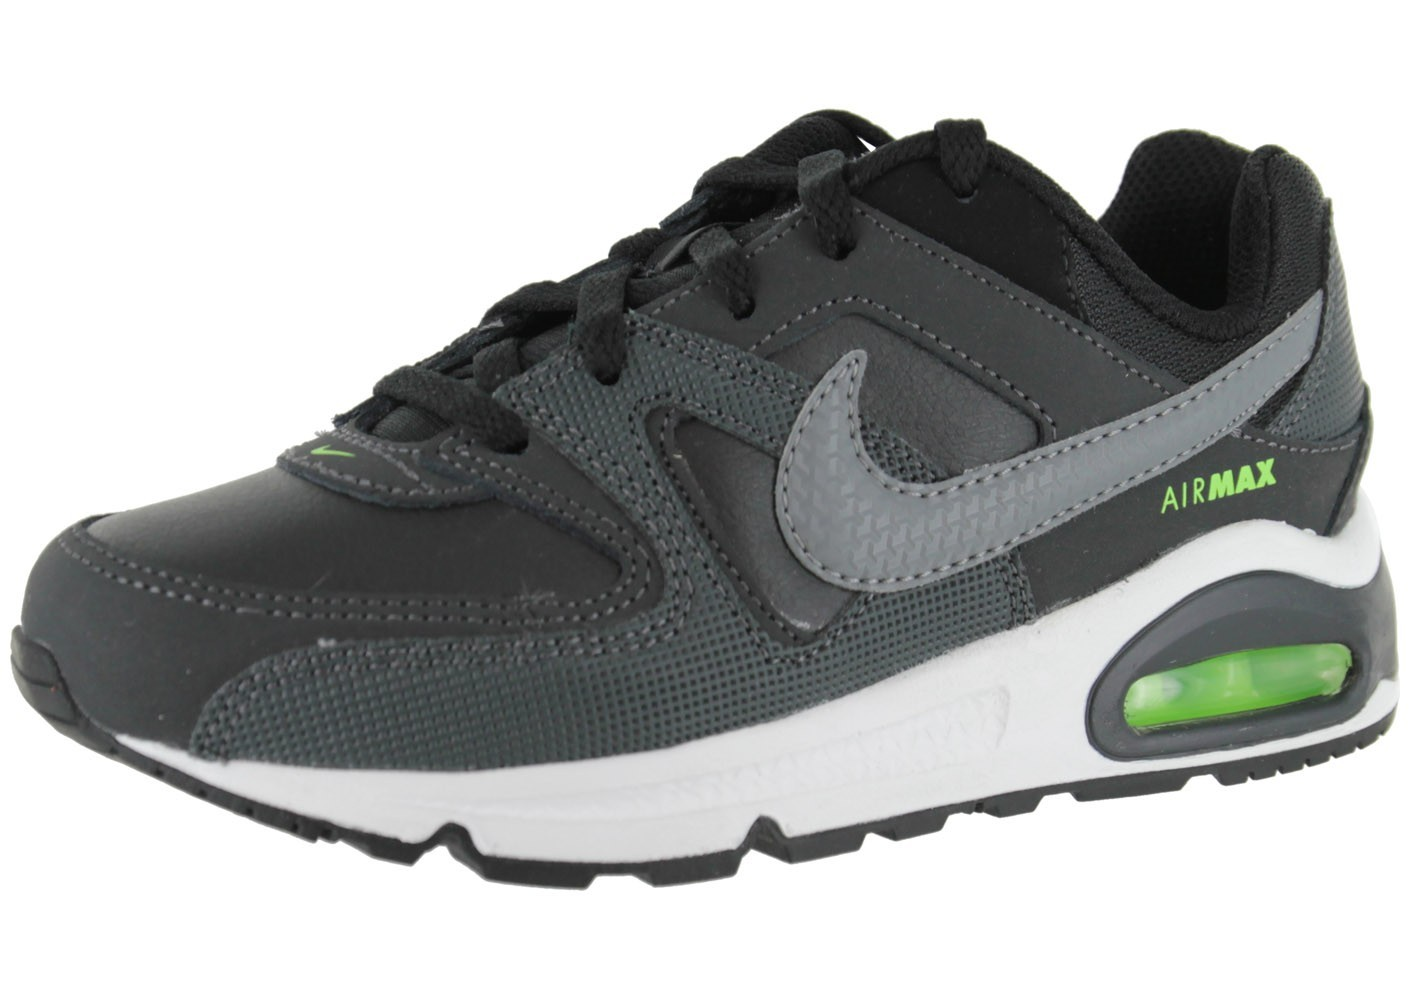 nike air max command soldes pas cher